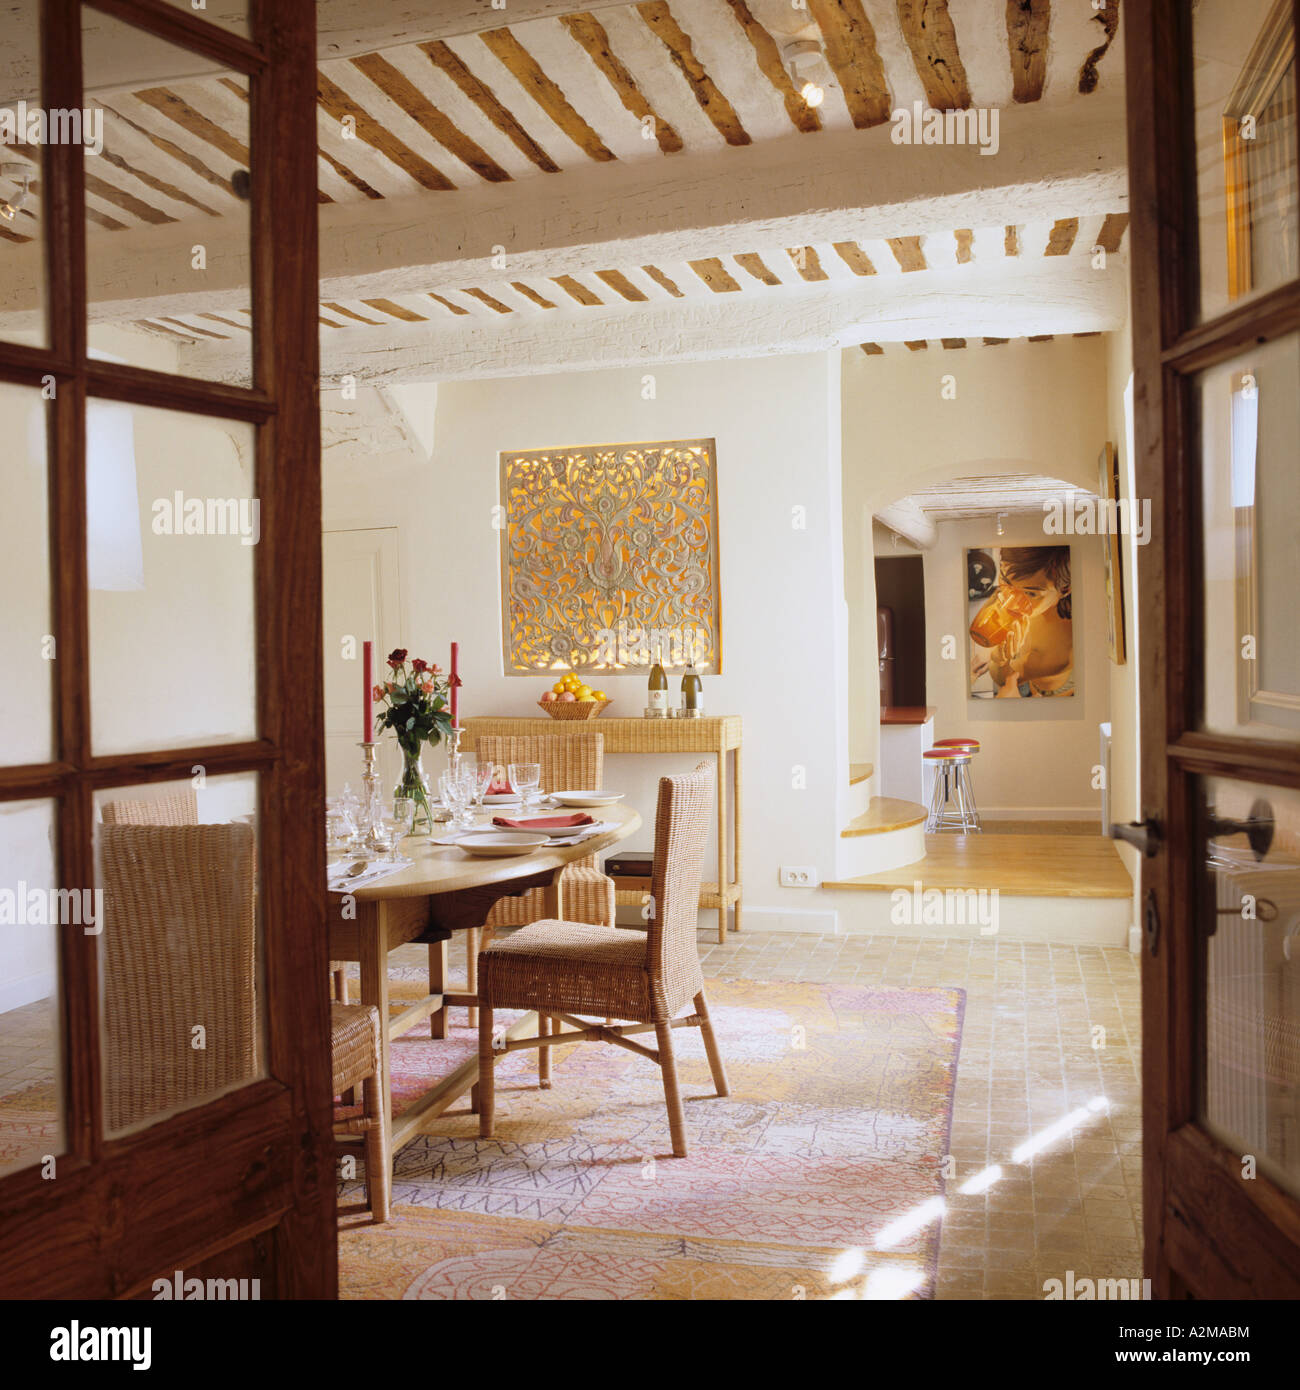 View through double doors to dining room with beamed ceiling Stock Photo